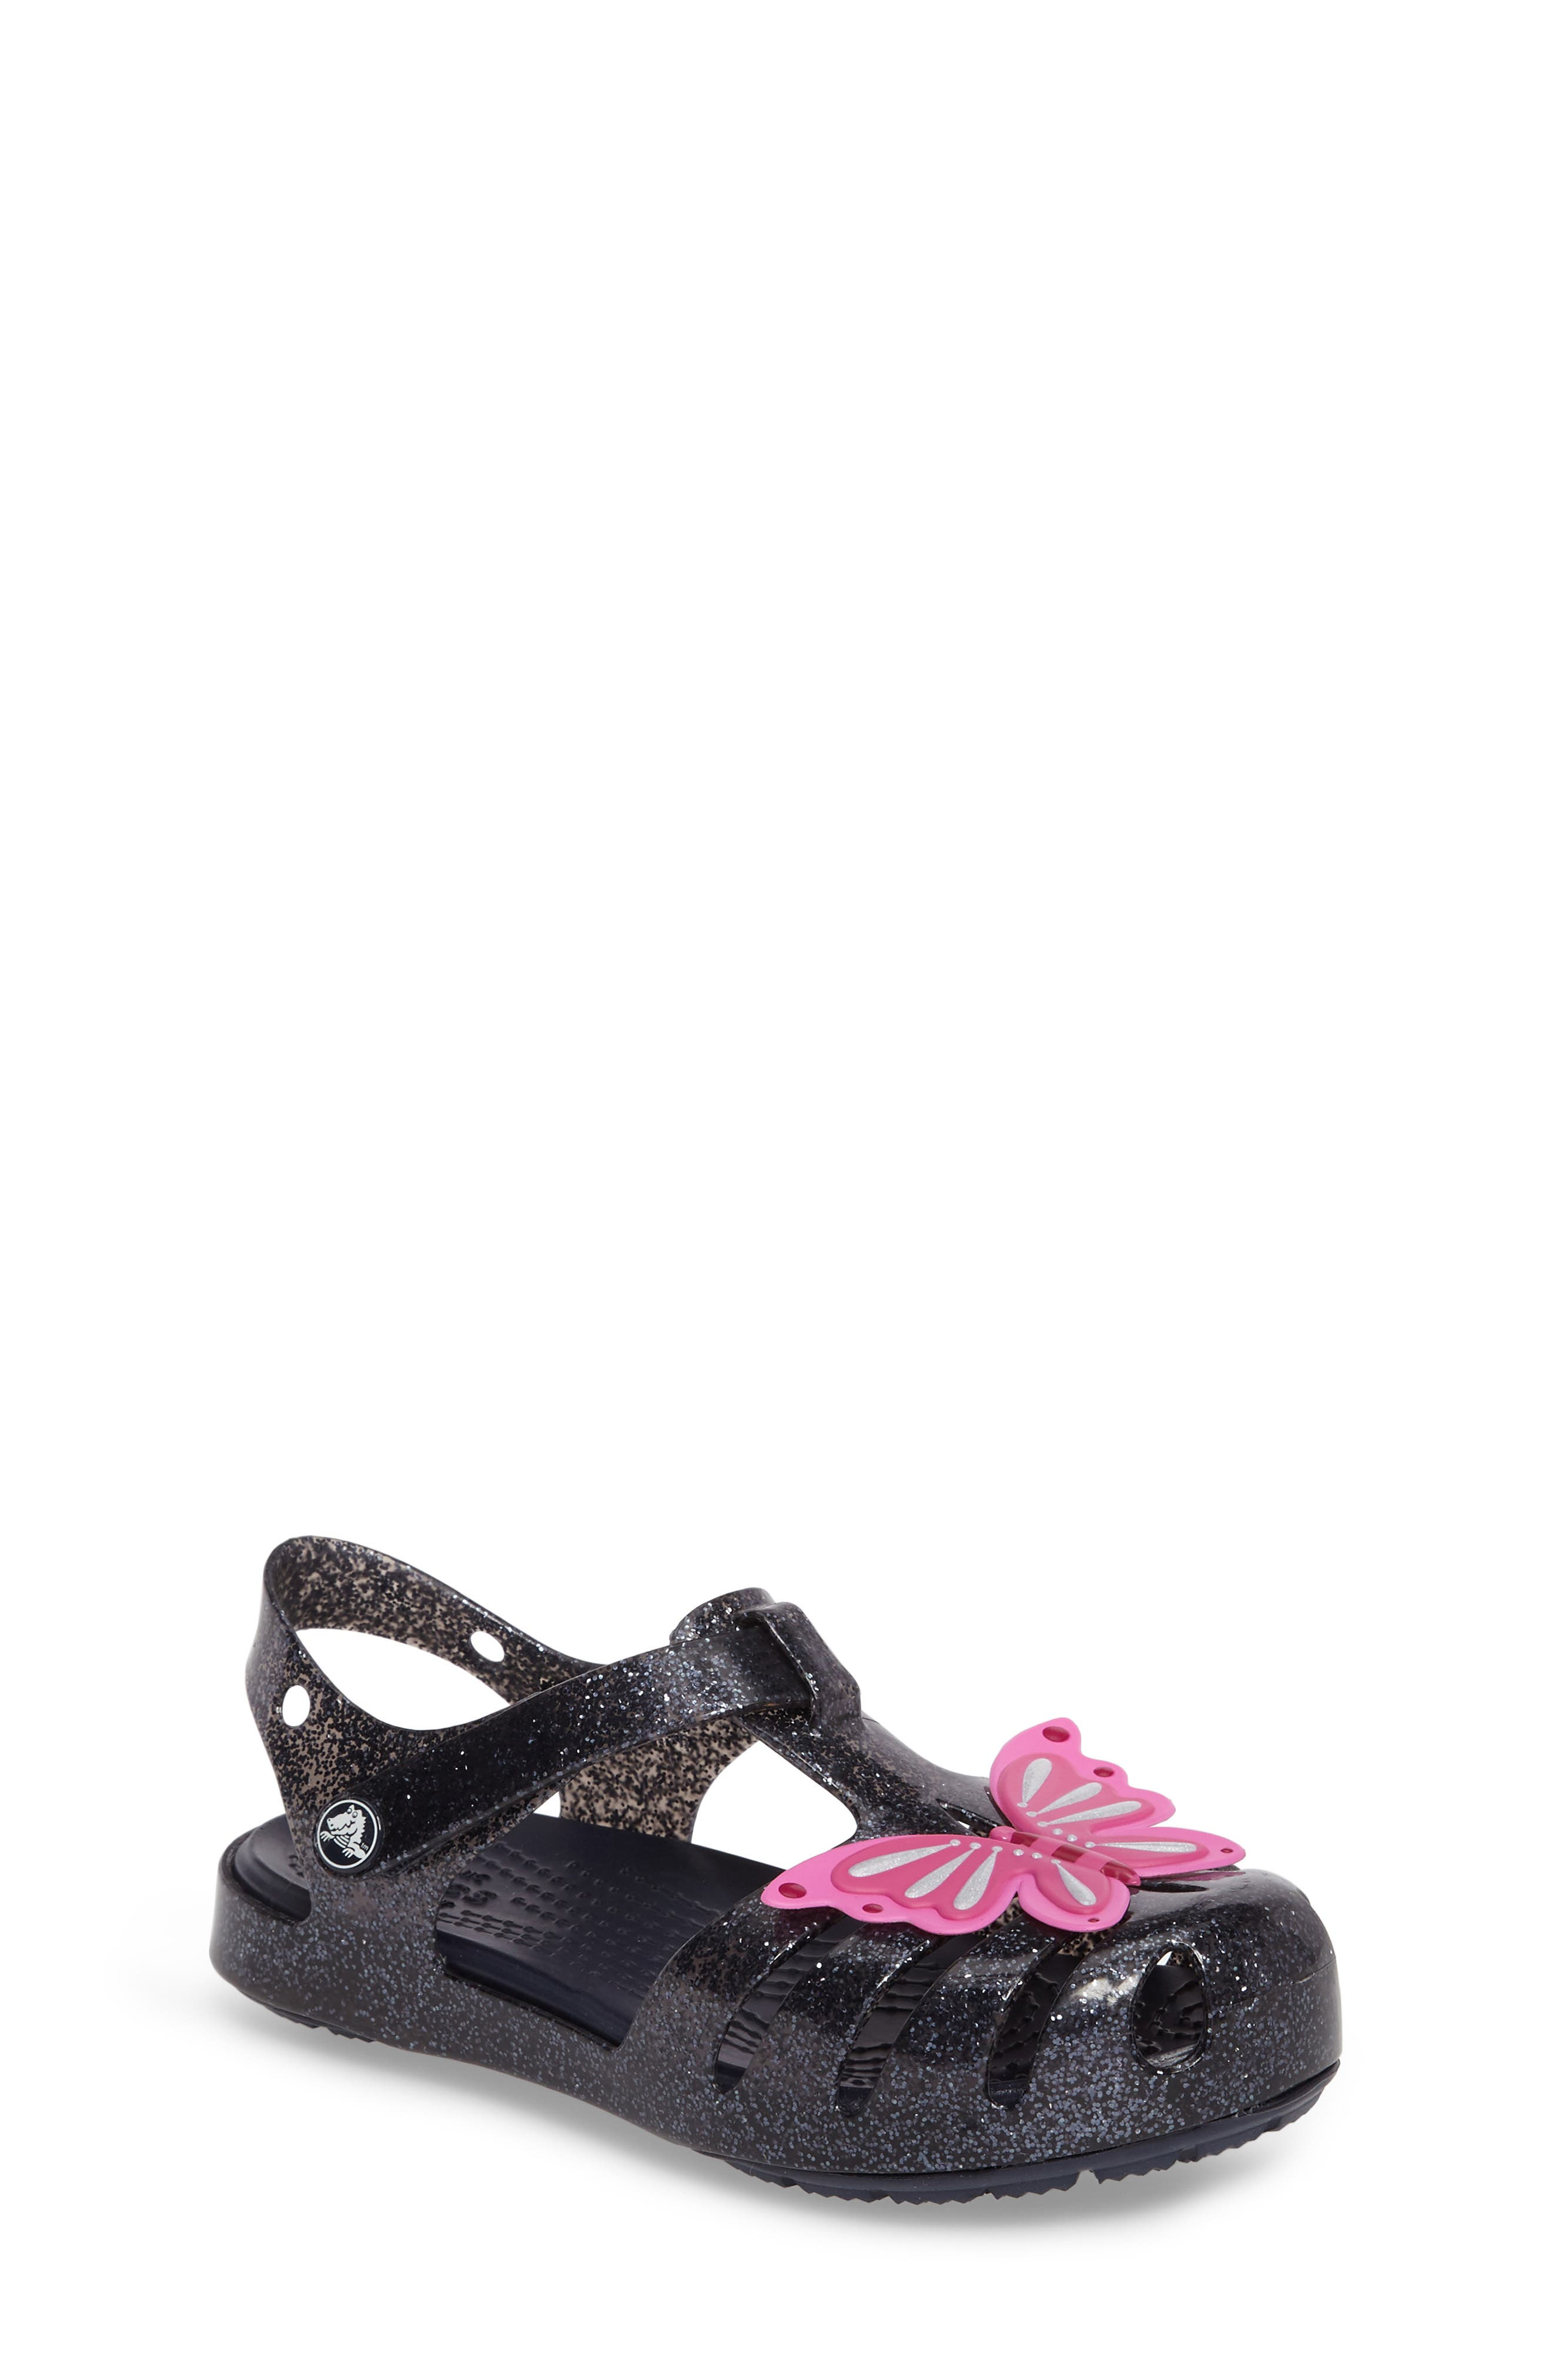 CROCS™ Isabella Novelty Sandal (Baby, Walker, Toddler & Little Kid)